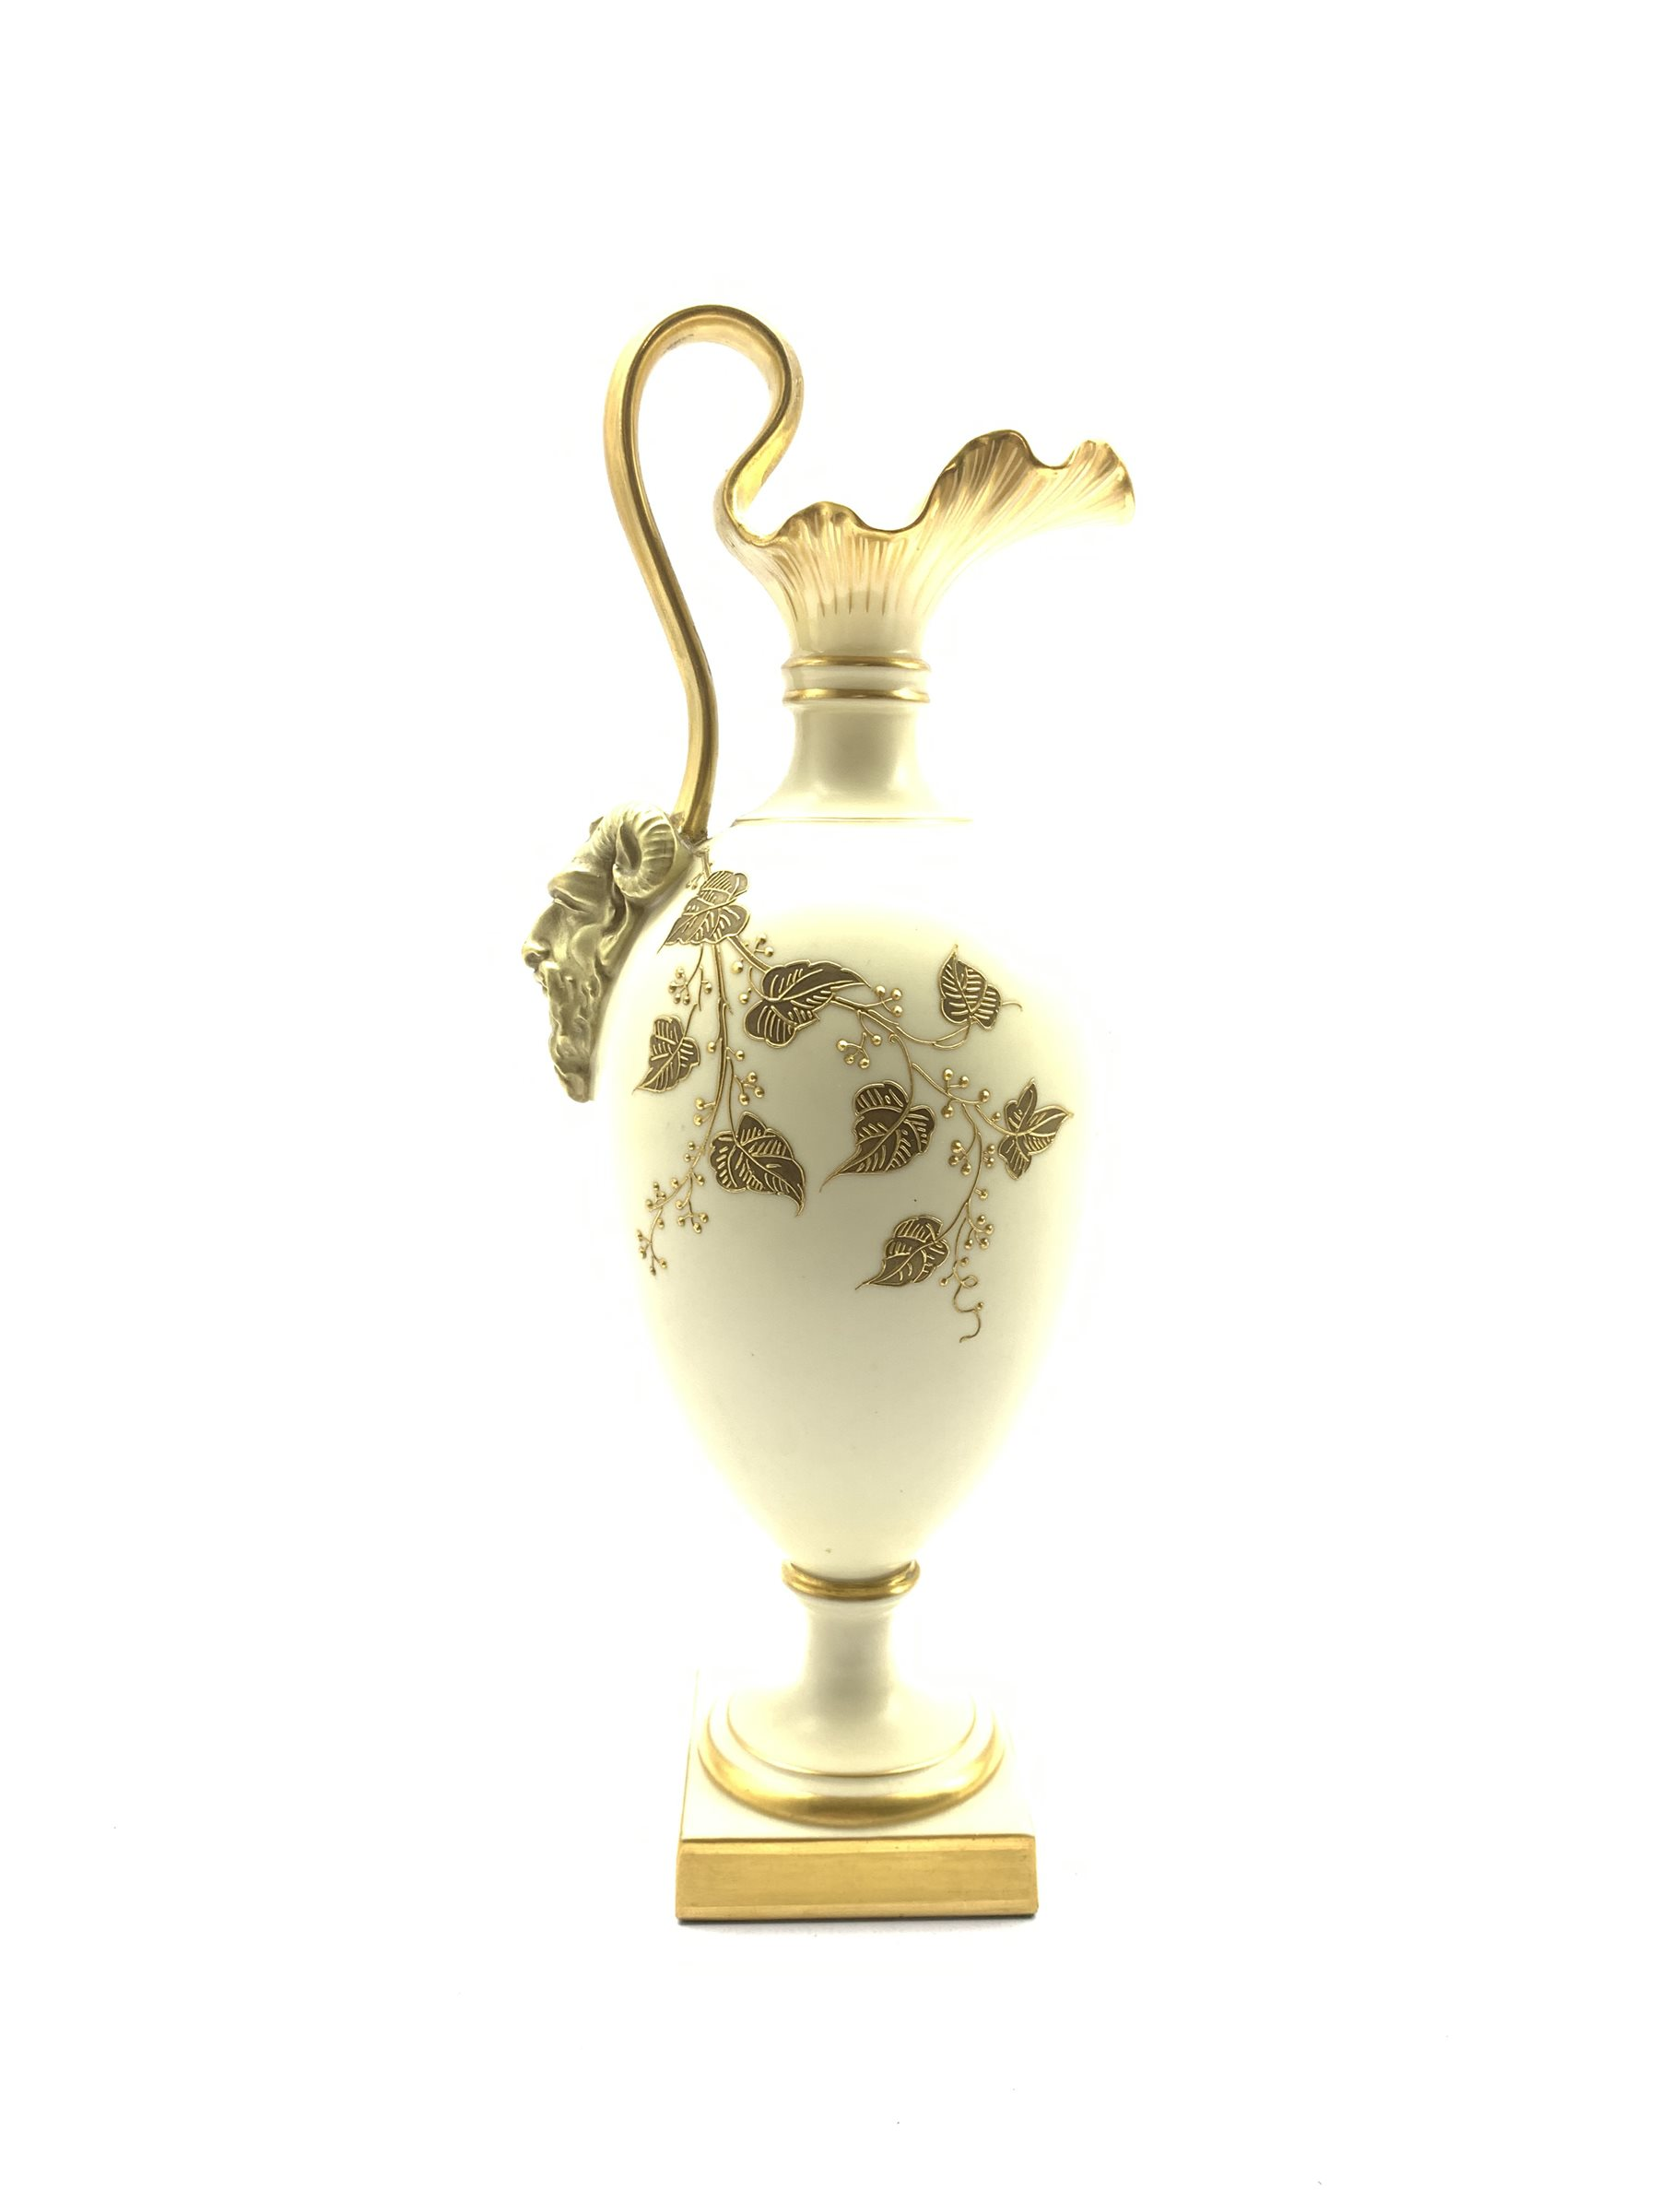 Royal Worcester blush ivory ewer the base of the handle decorated with a satyr mask and decorated wi